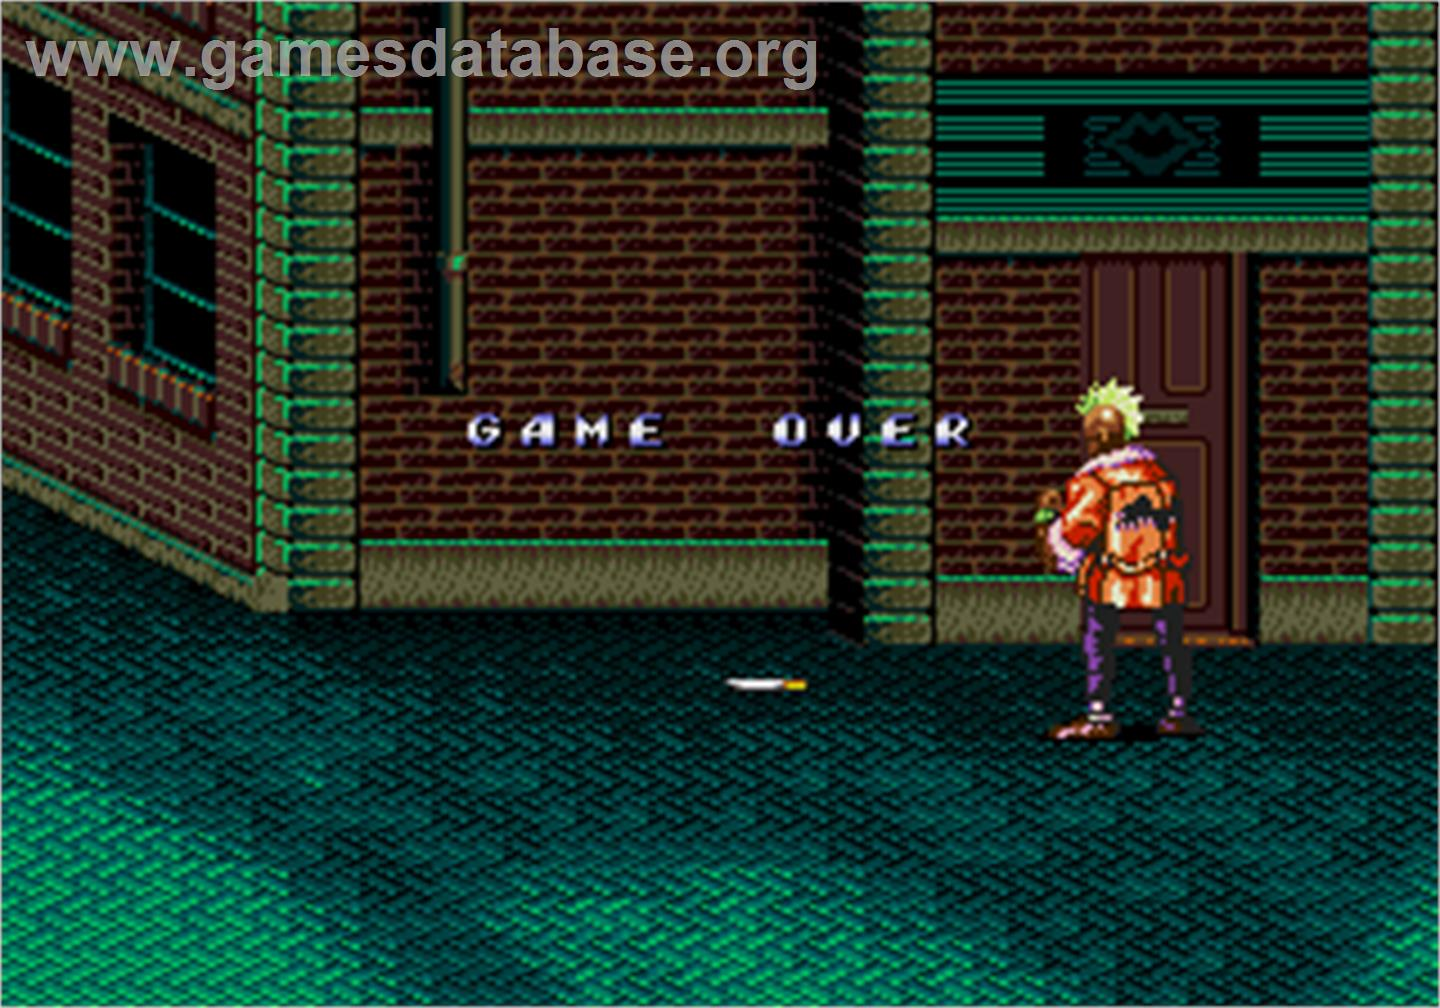 Game Over Screen for Streets of Rage II.